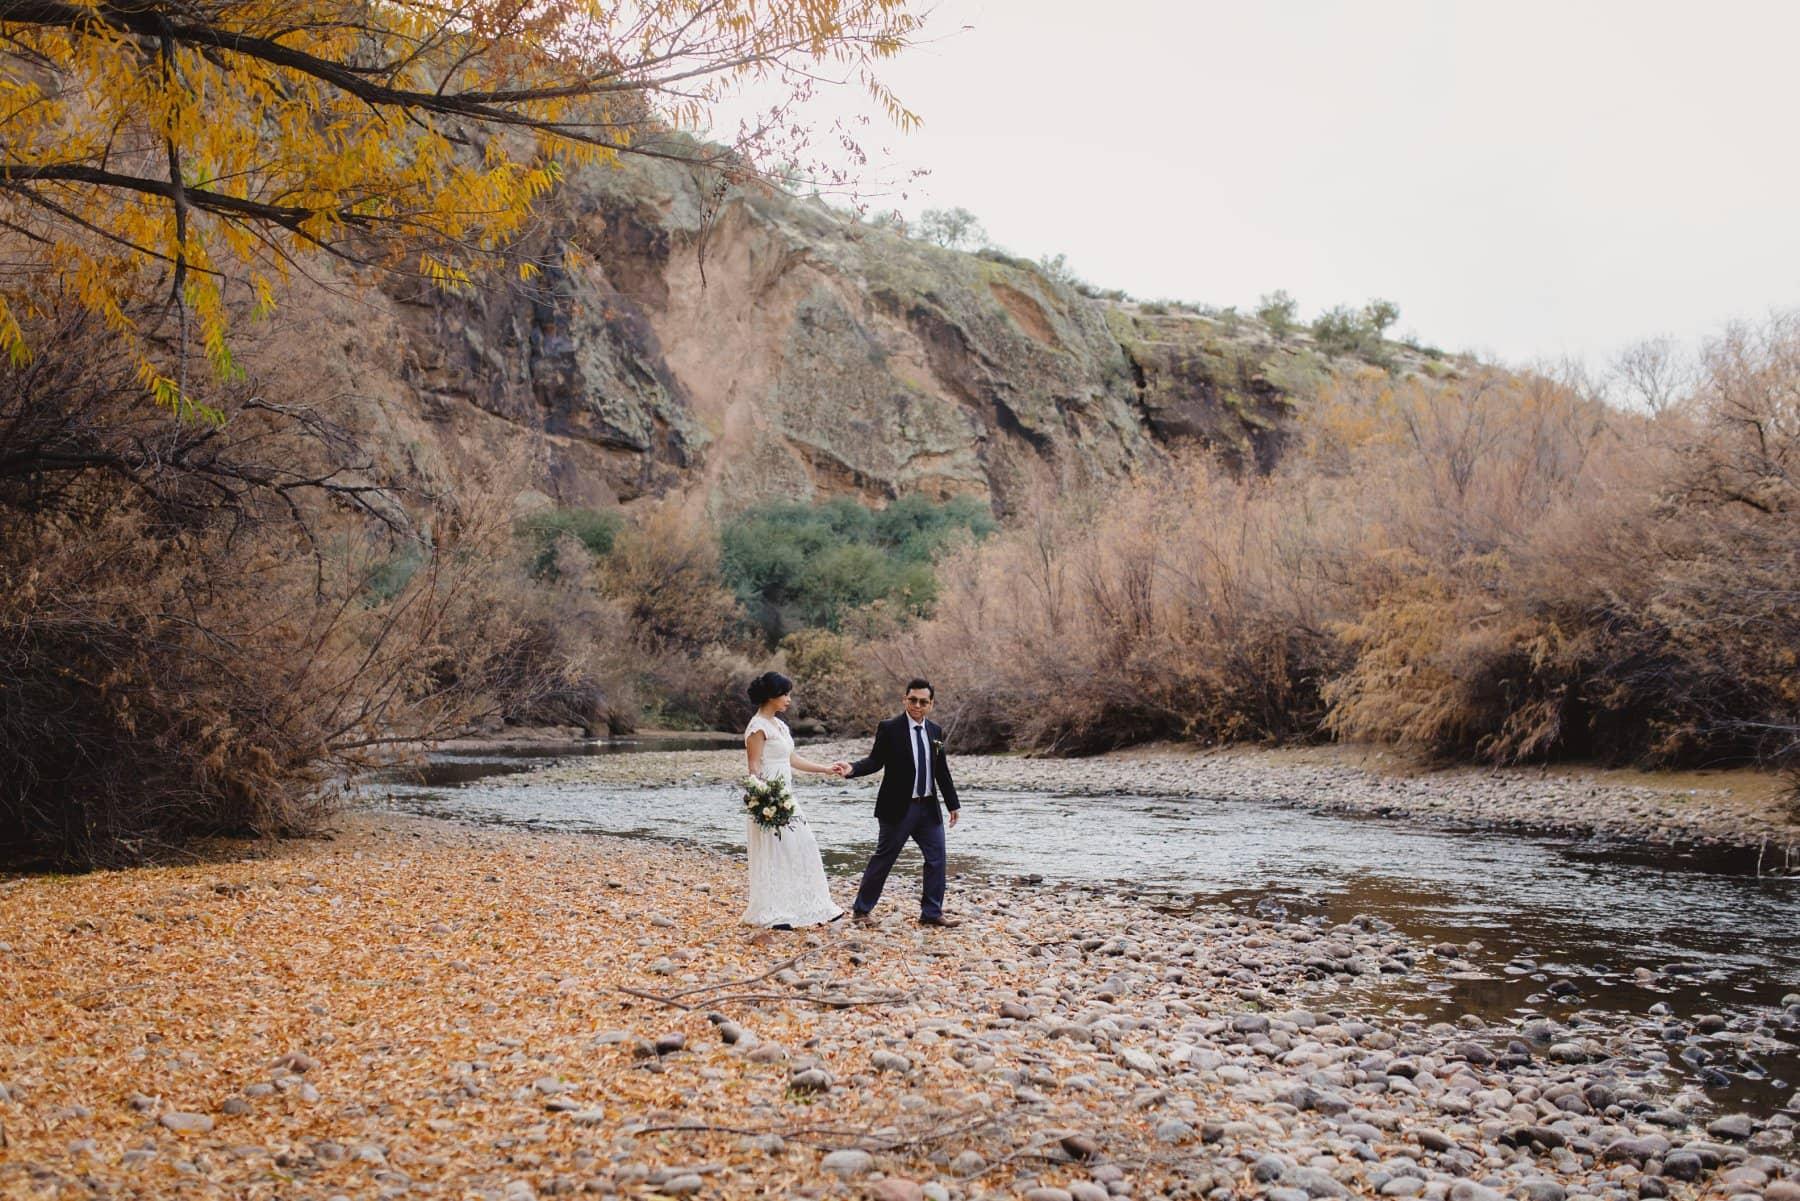 Salt River winter wedding photos